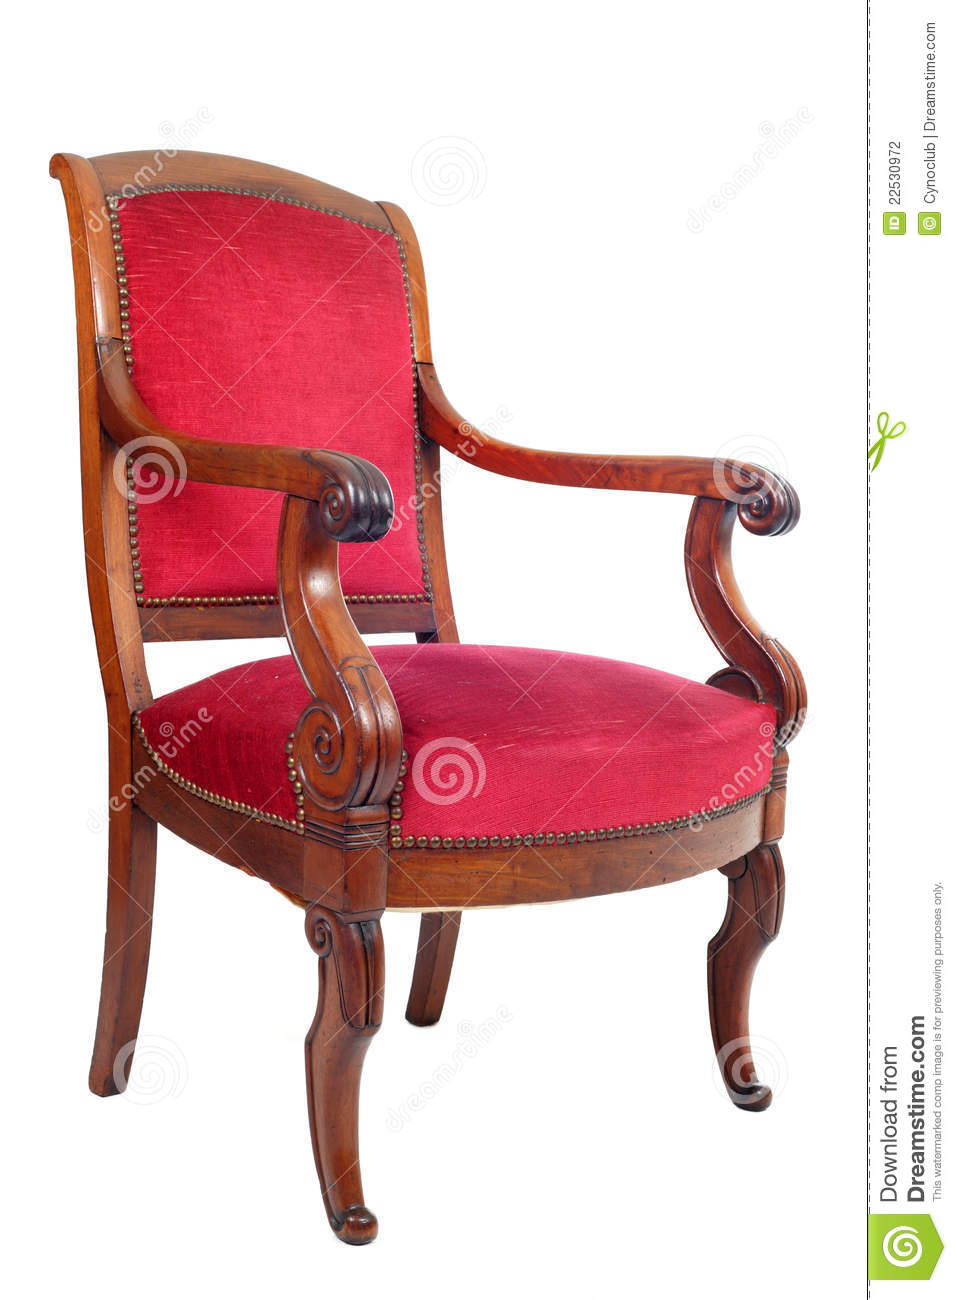 Antique chairs design - Antique Chair Stock Photography Image 22530972